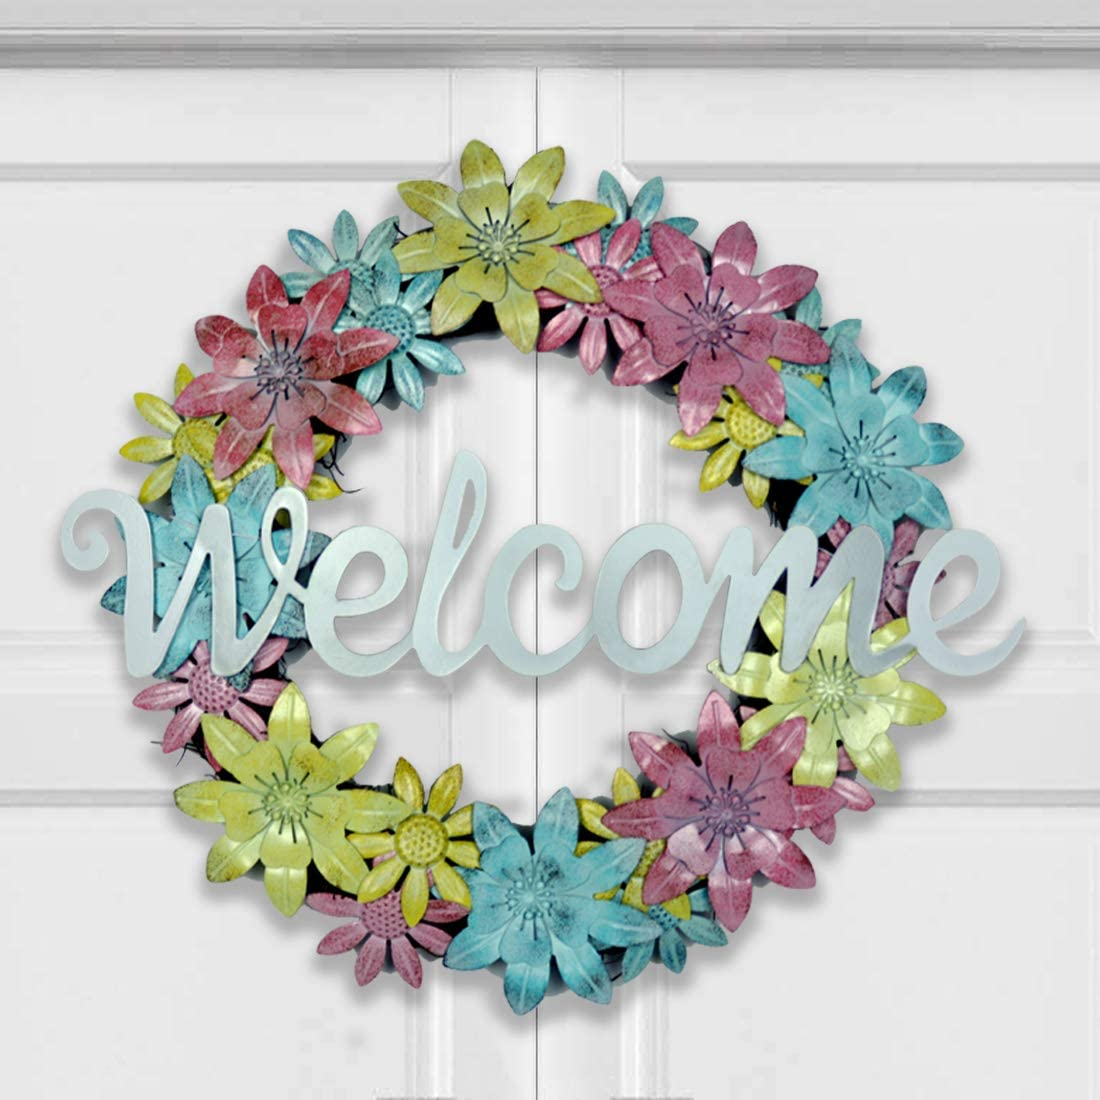 HOMirable 17 Inch Metal Flower Wreaths for Front Door, Welcome Sign Floral Wreath, Iron Farmhouse Wreath for Spring Summer, Yard Garden Home Wall Art Décor